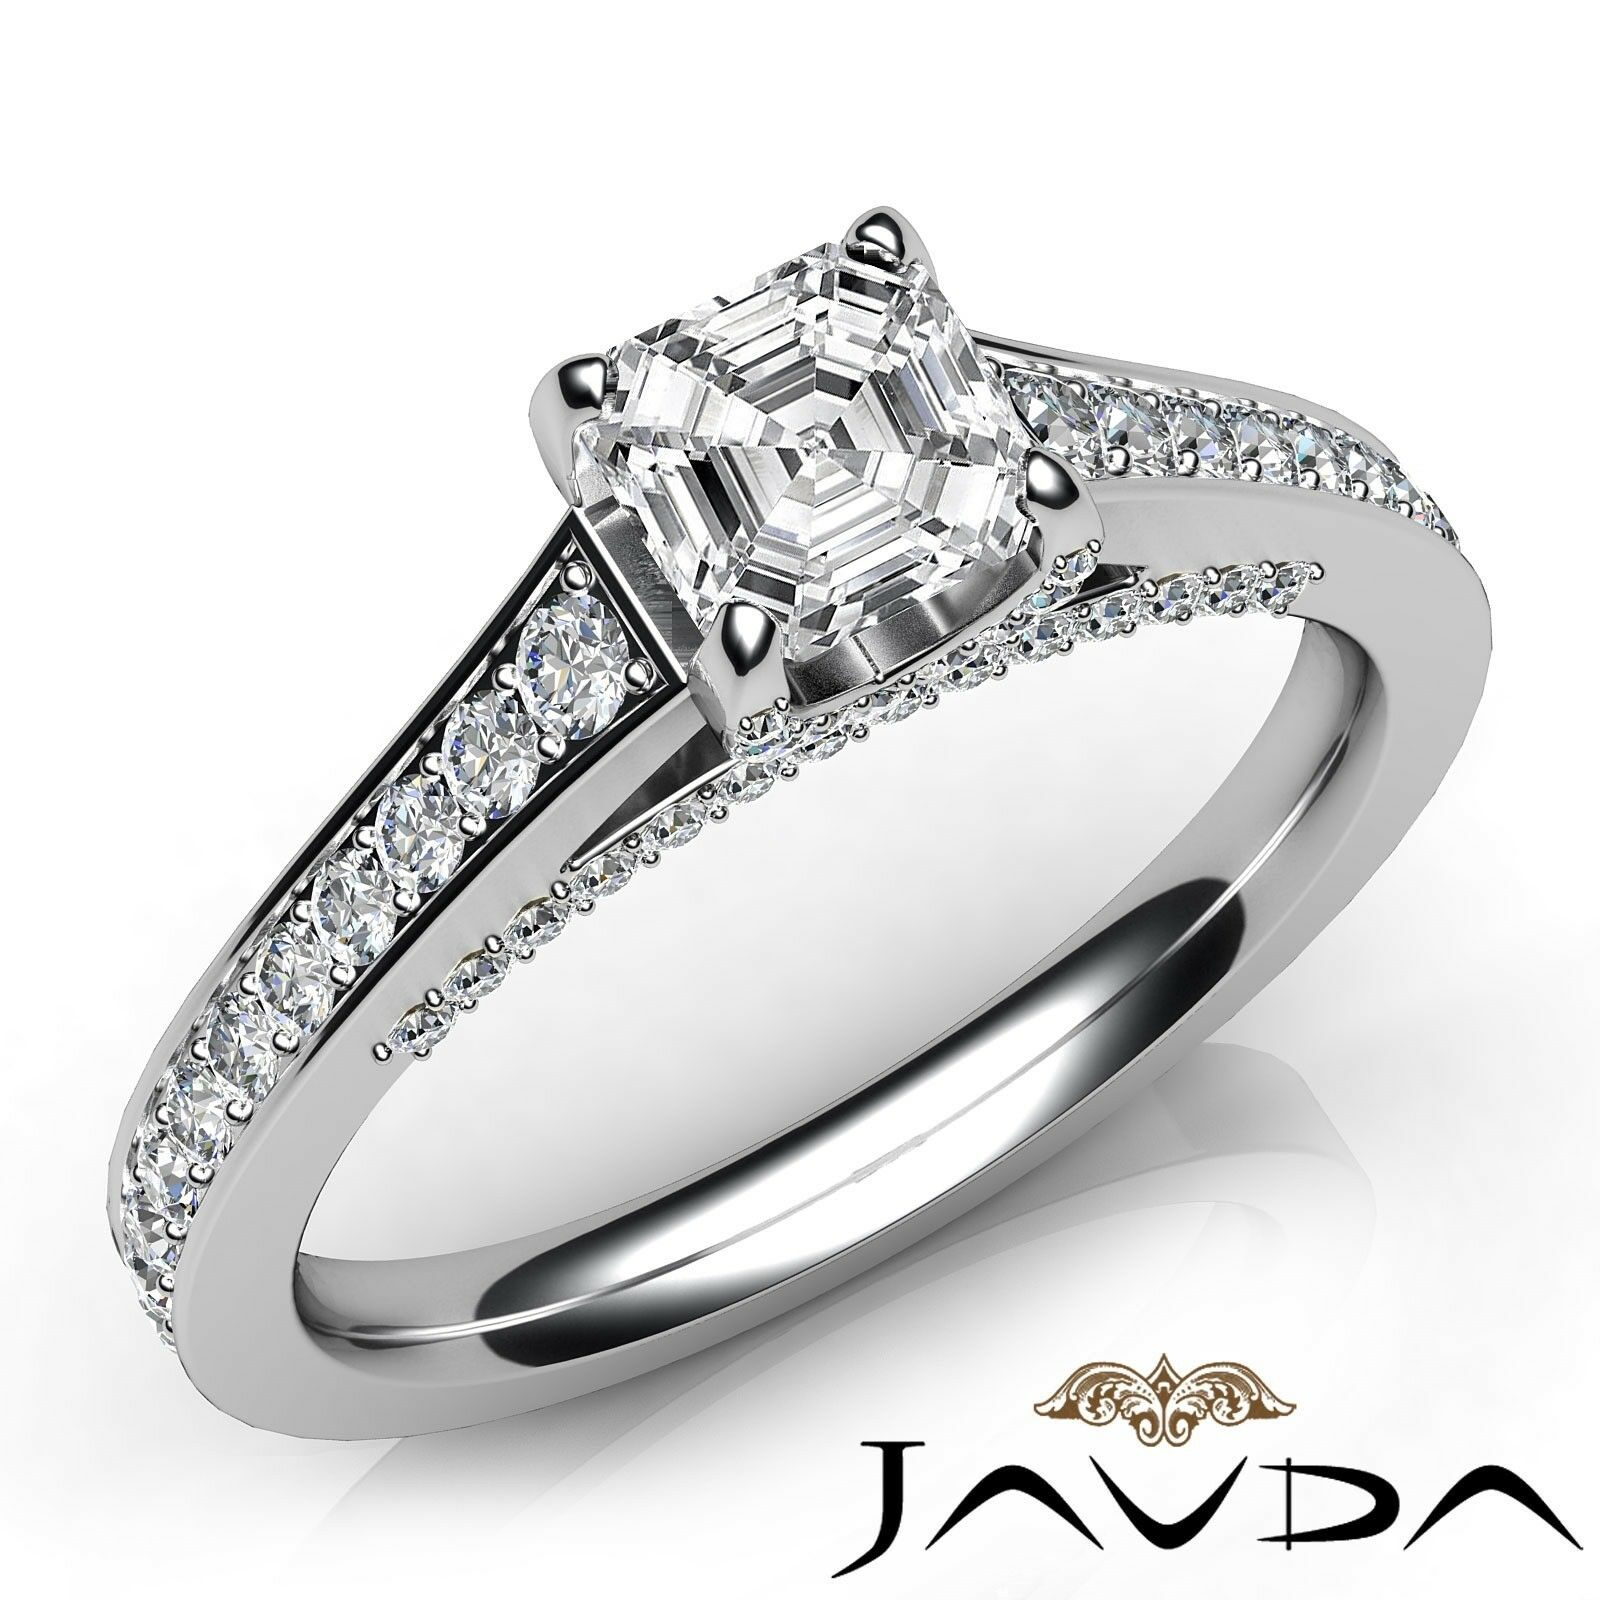 1.89ctw Tapered Pave Asscher Diamond Engagement Ring GIA G-IF White Gold Rings